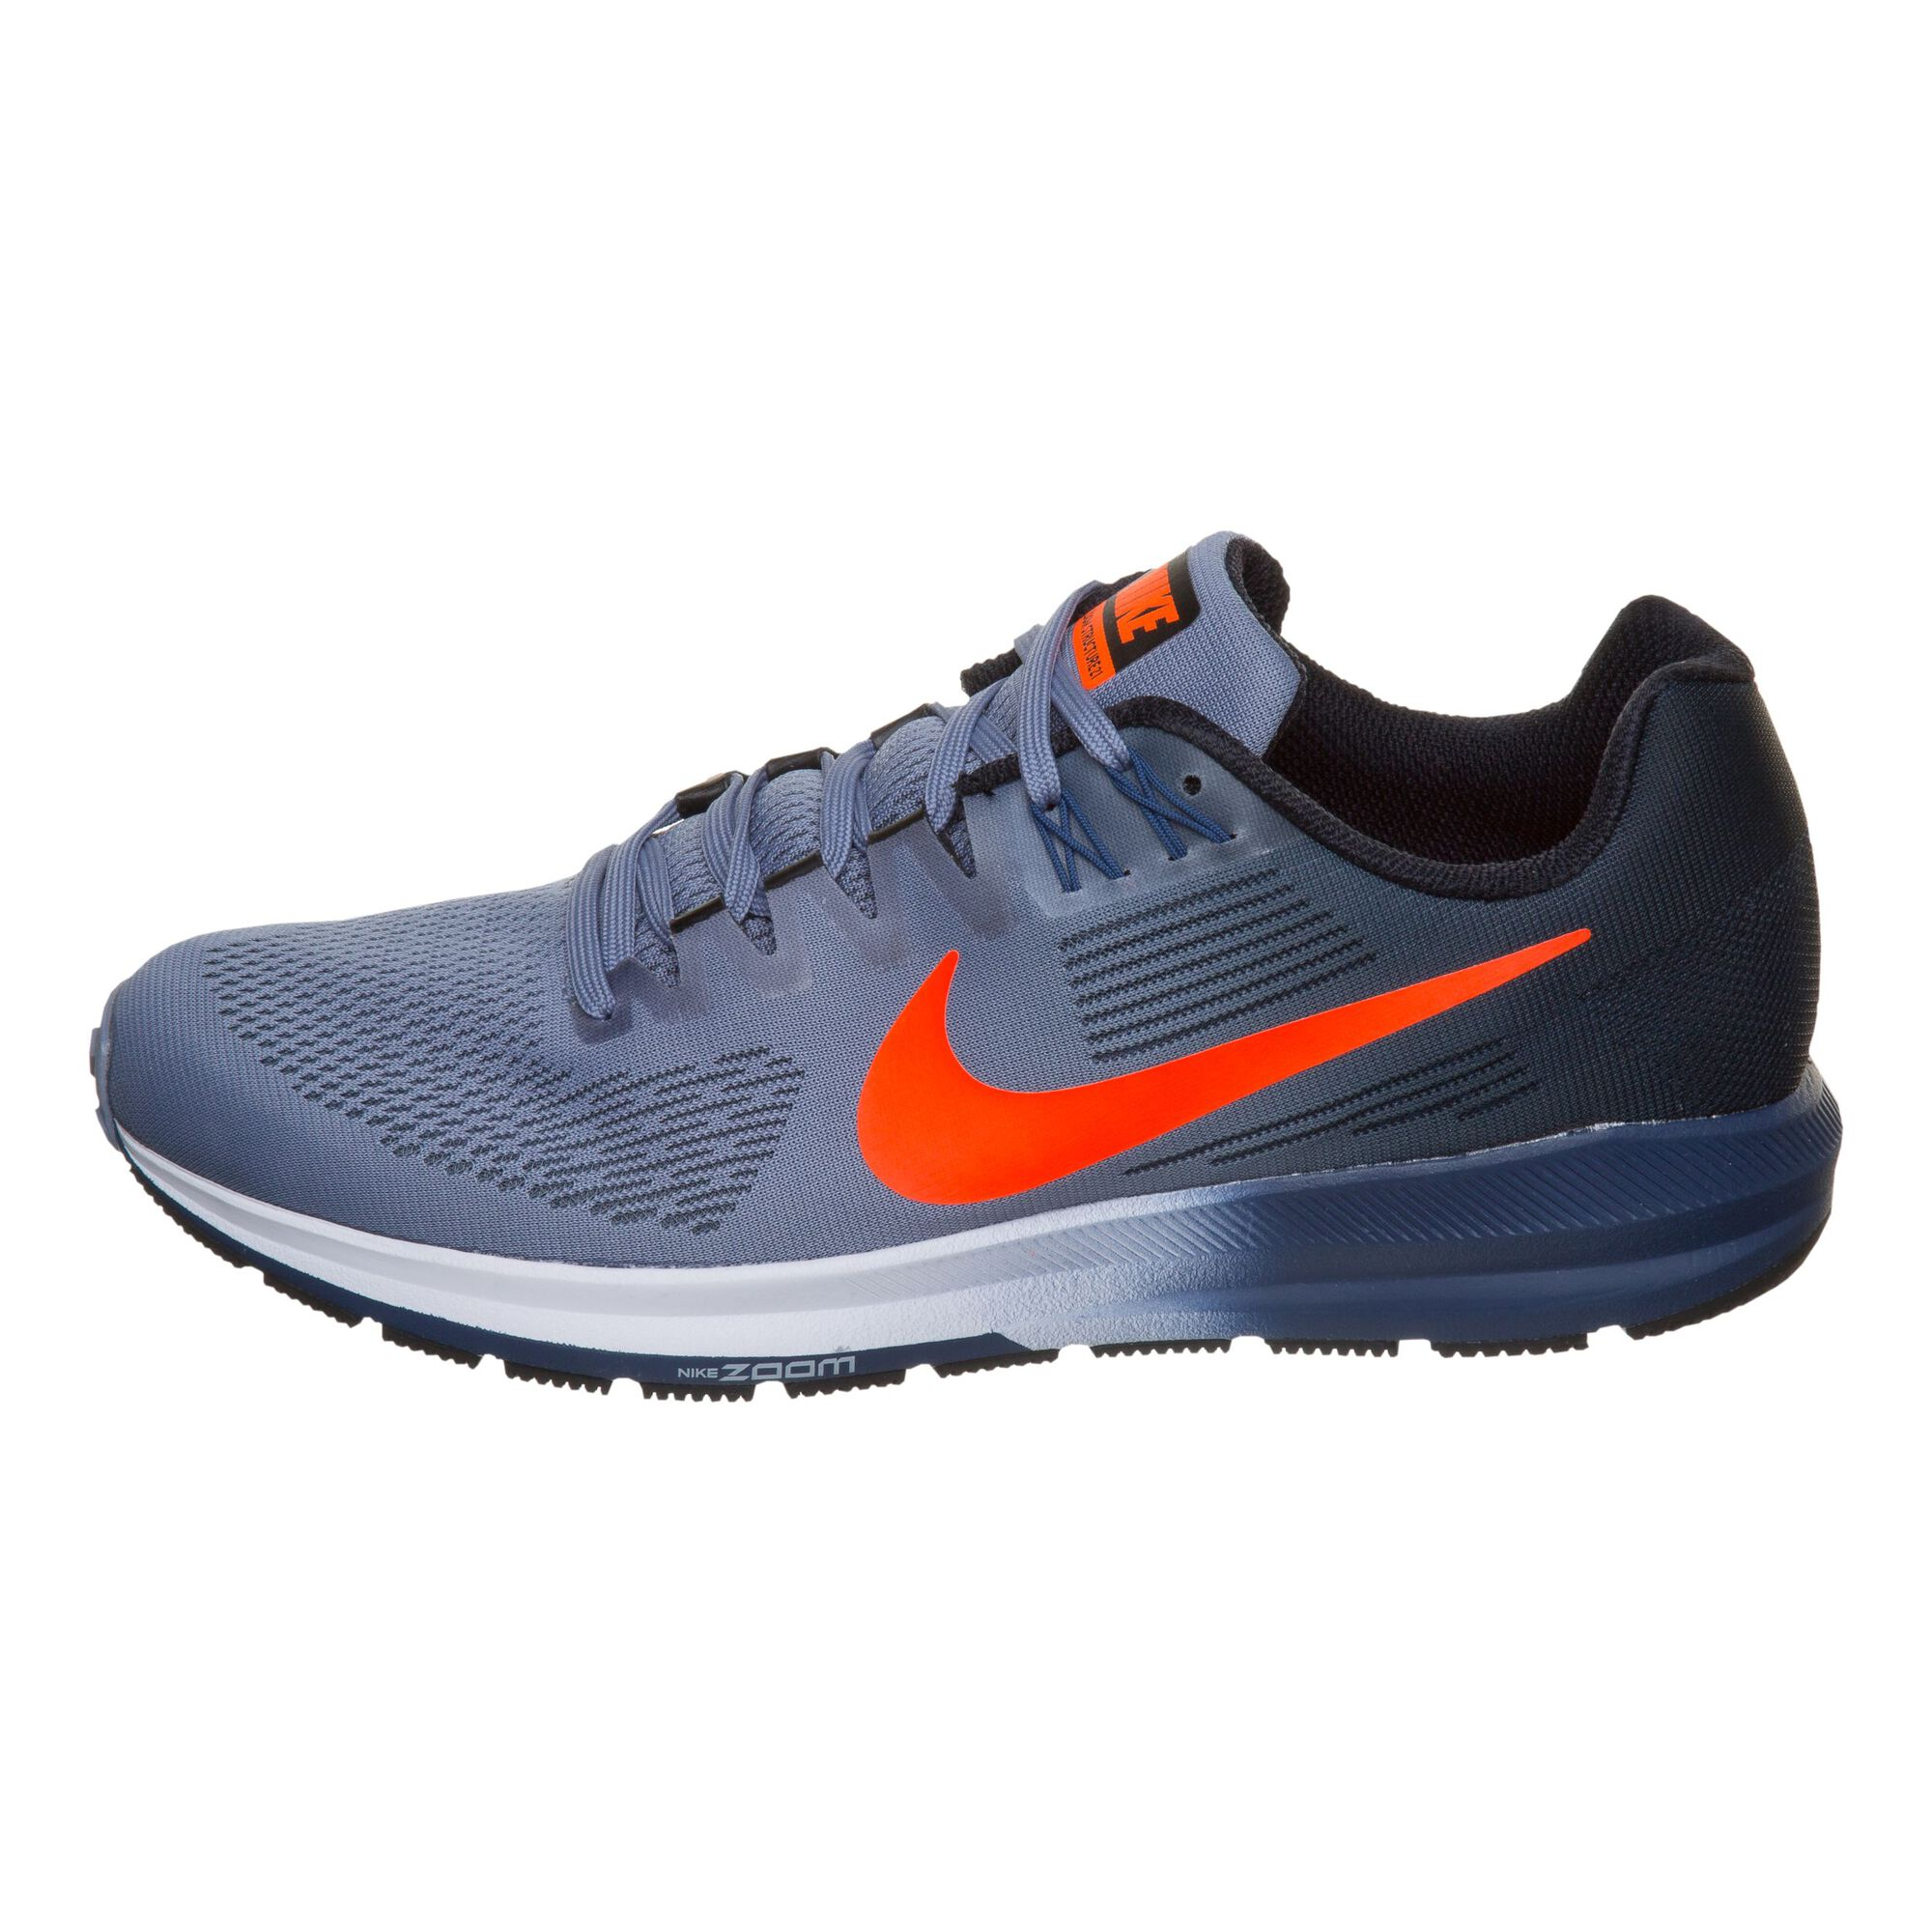 e529b0eea2ce Nike  Nike  Nike  Nike  Nike  Nike  Nike  Nike  Nike  Nike. Air Zoom  Structure 21 ...